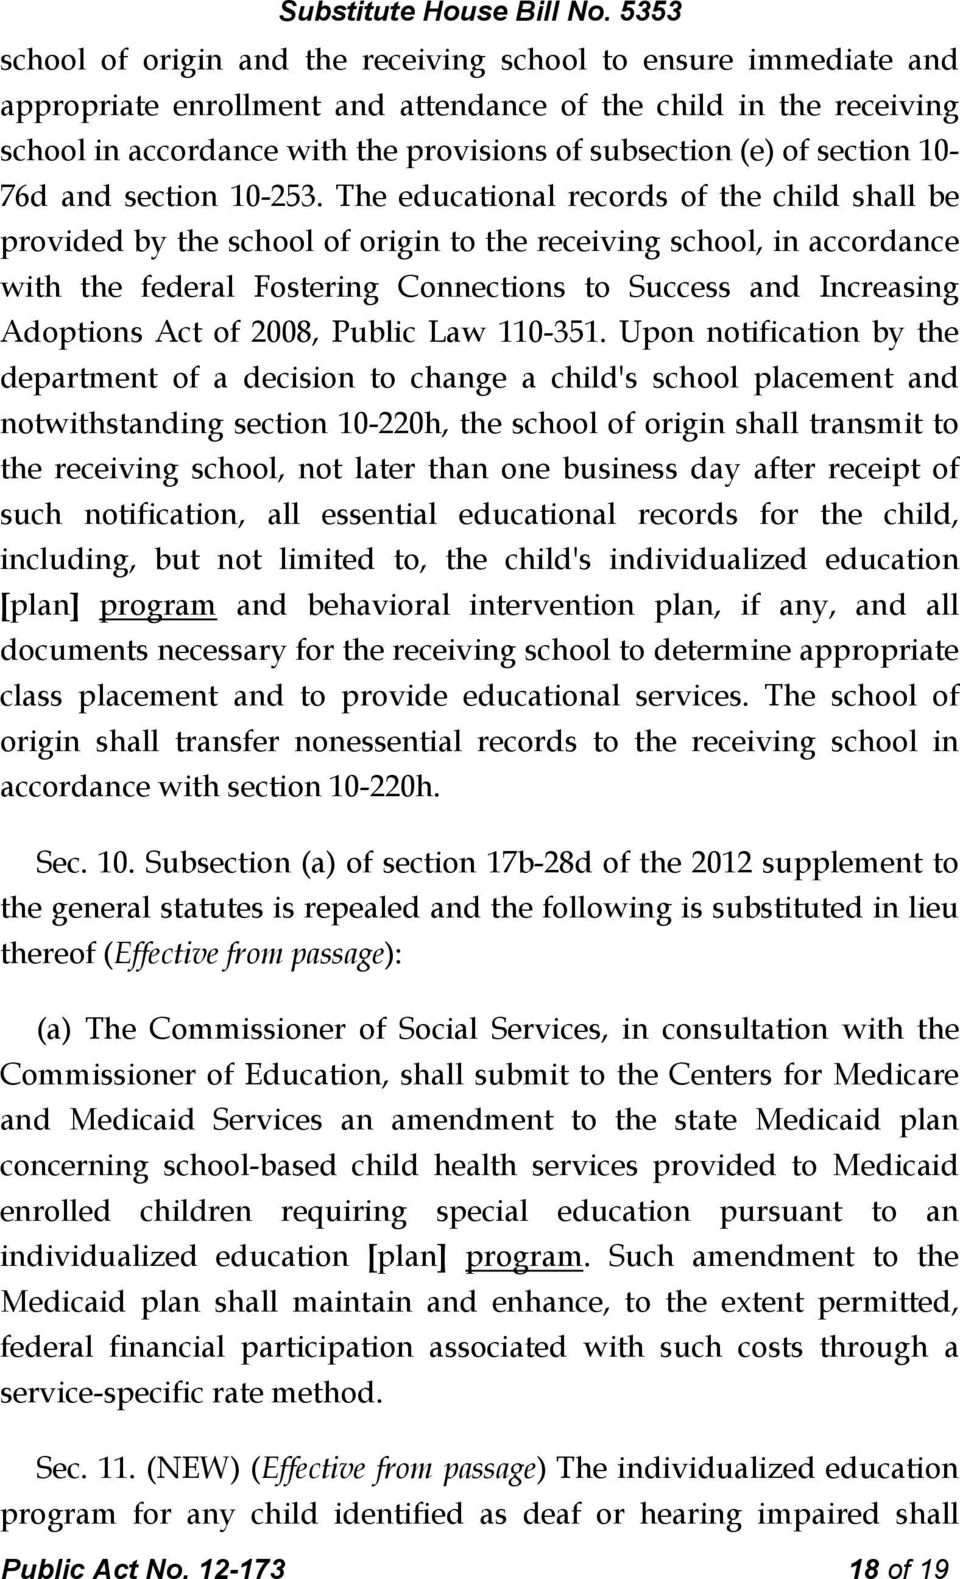 The educational records of the child shall be provided by the school of origin to the receiving school, in accordance with the federal Fostering Connections to Success and Increasing Adoptions Act of